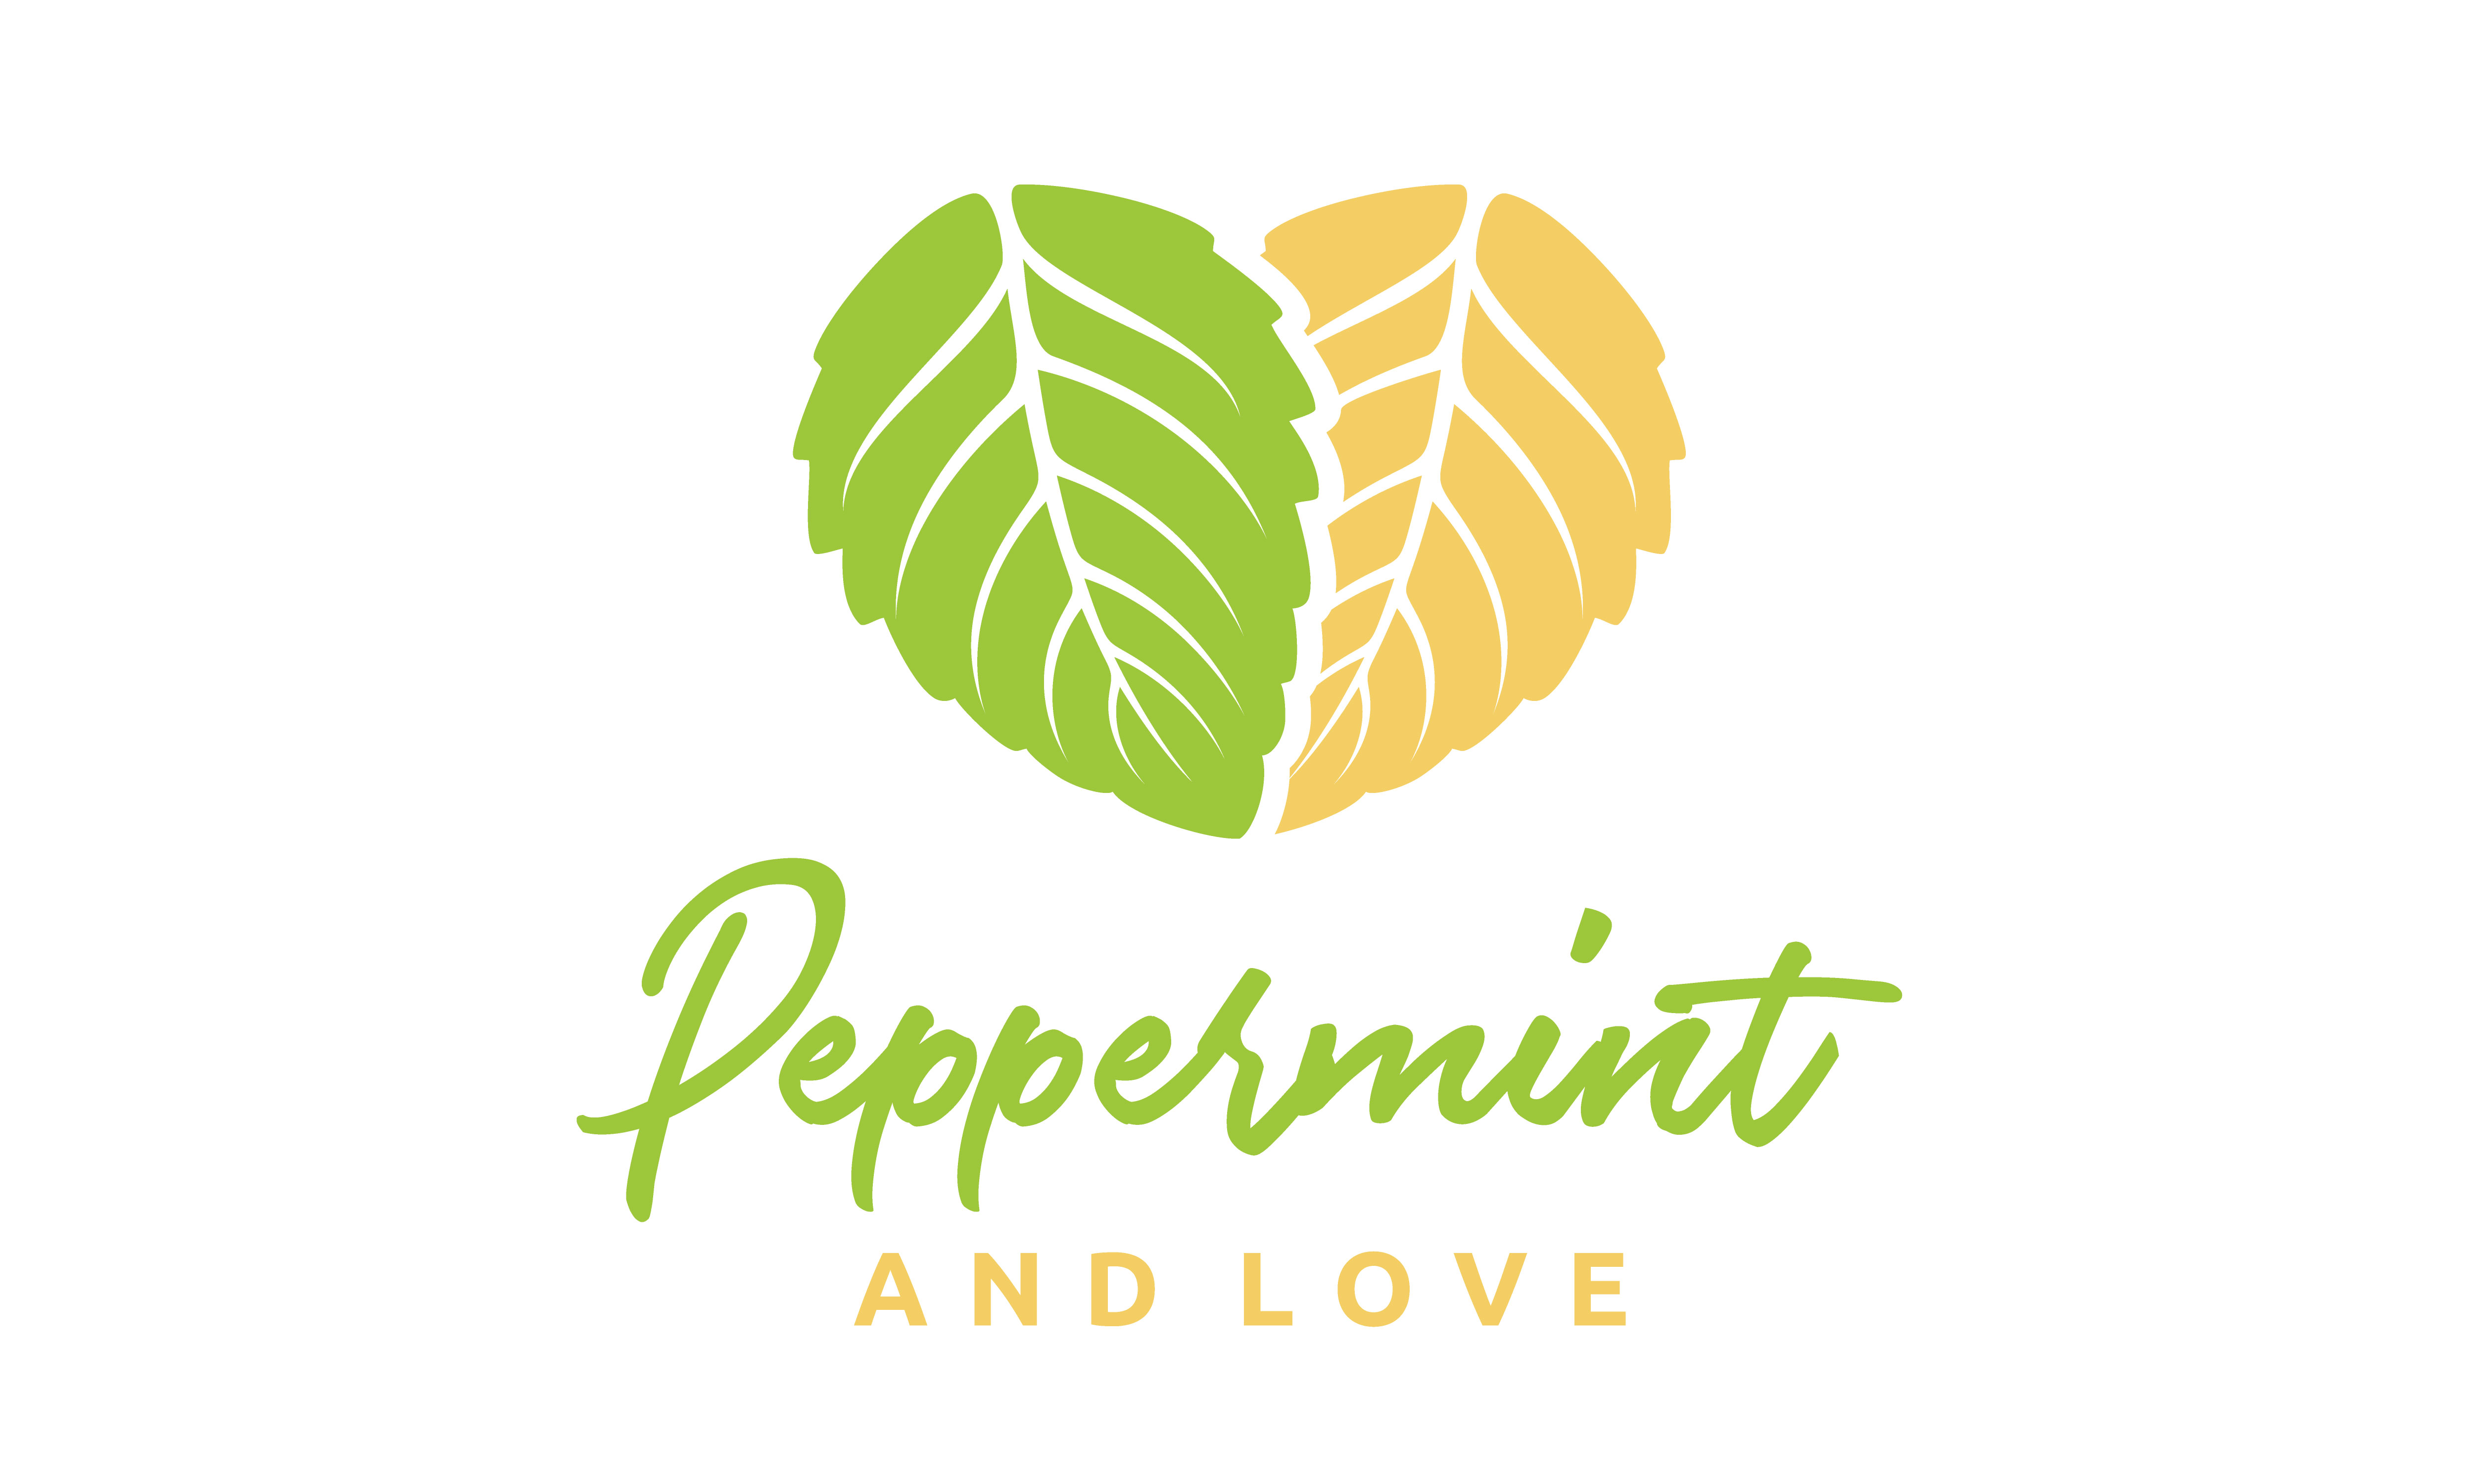 Download Free Peppermint Mint Leaves Heart Love Logo Graphic By Enola99d for Cricut Explore, Silhouette and other cutting machines.